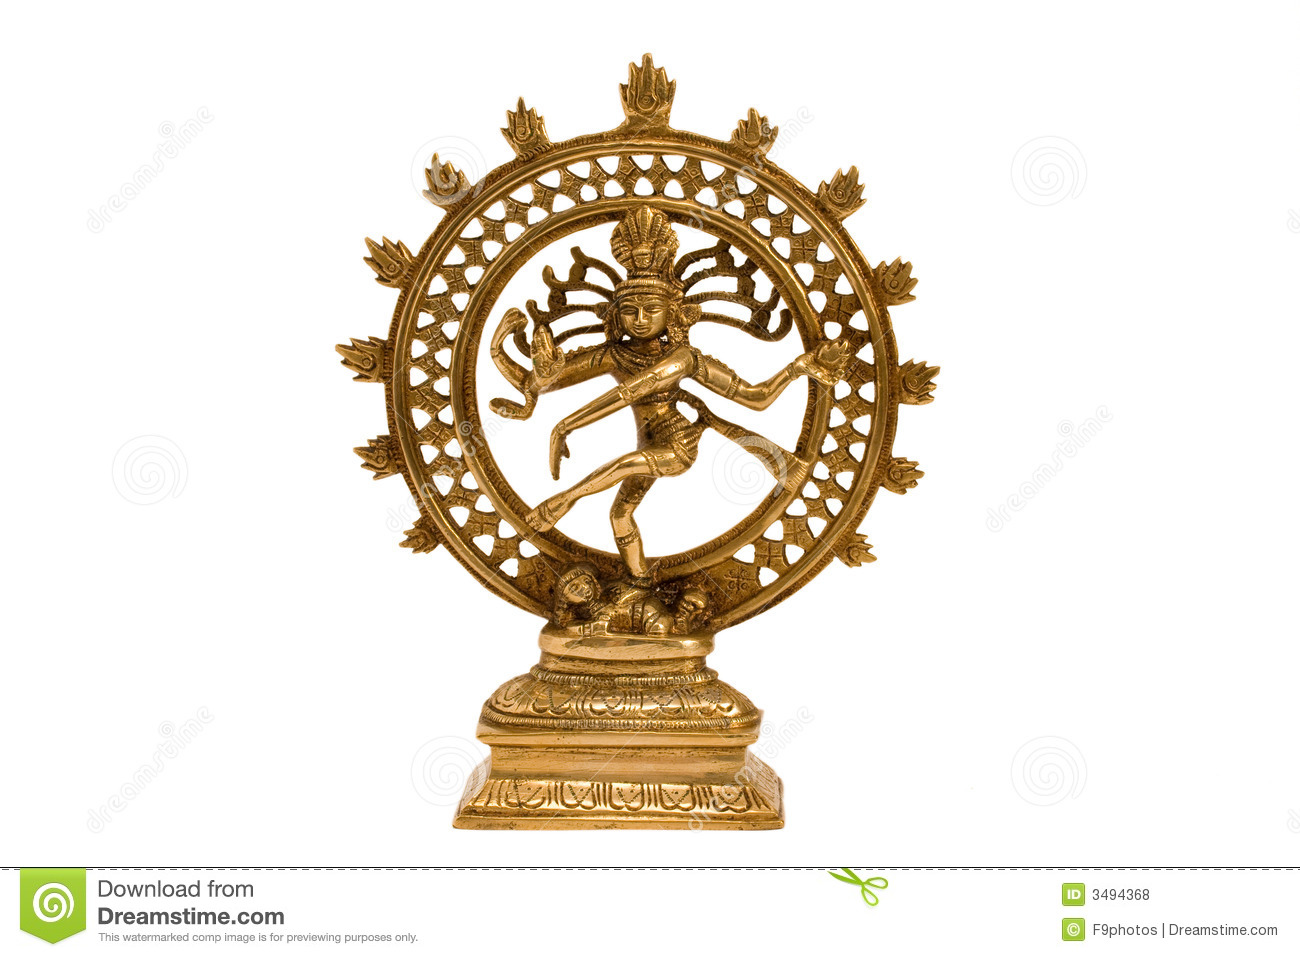 Good Wallpaper Lord Nataraja - shiva-nataraja-lord-dance-3494368  Gallery_145149.jpg